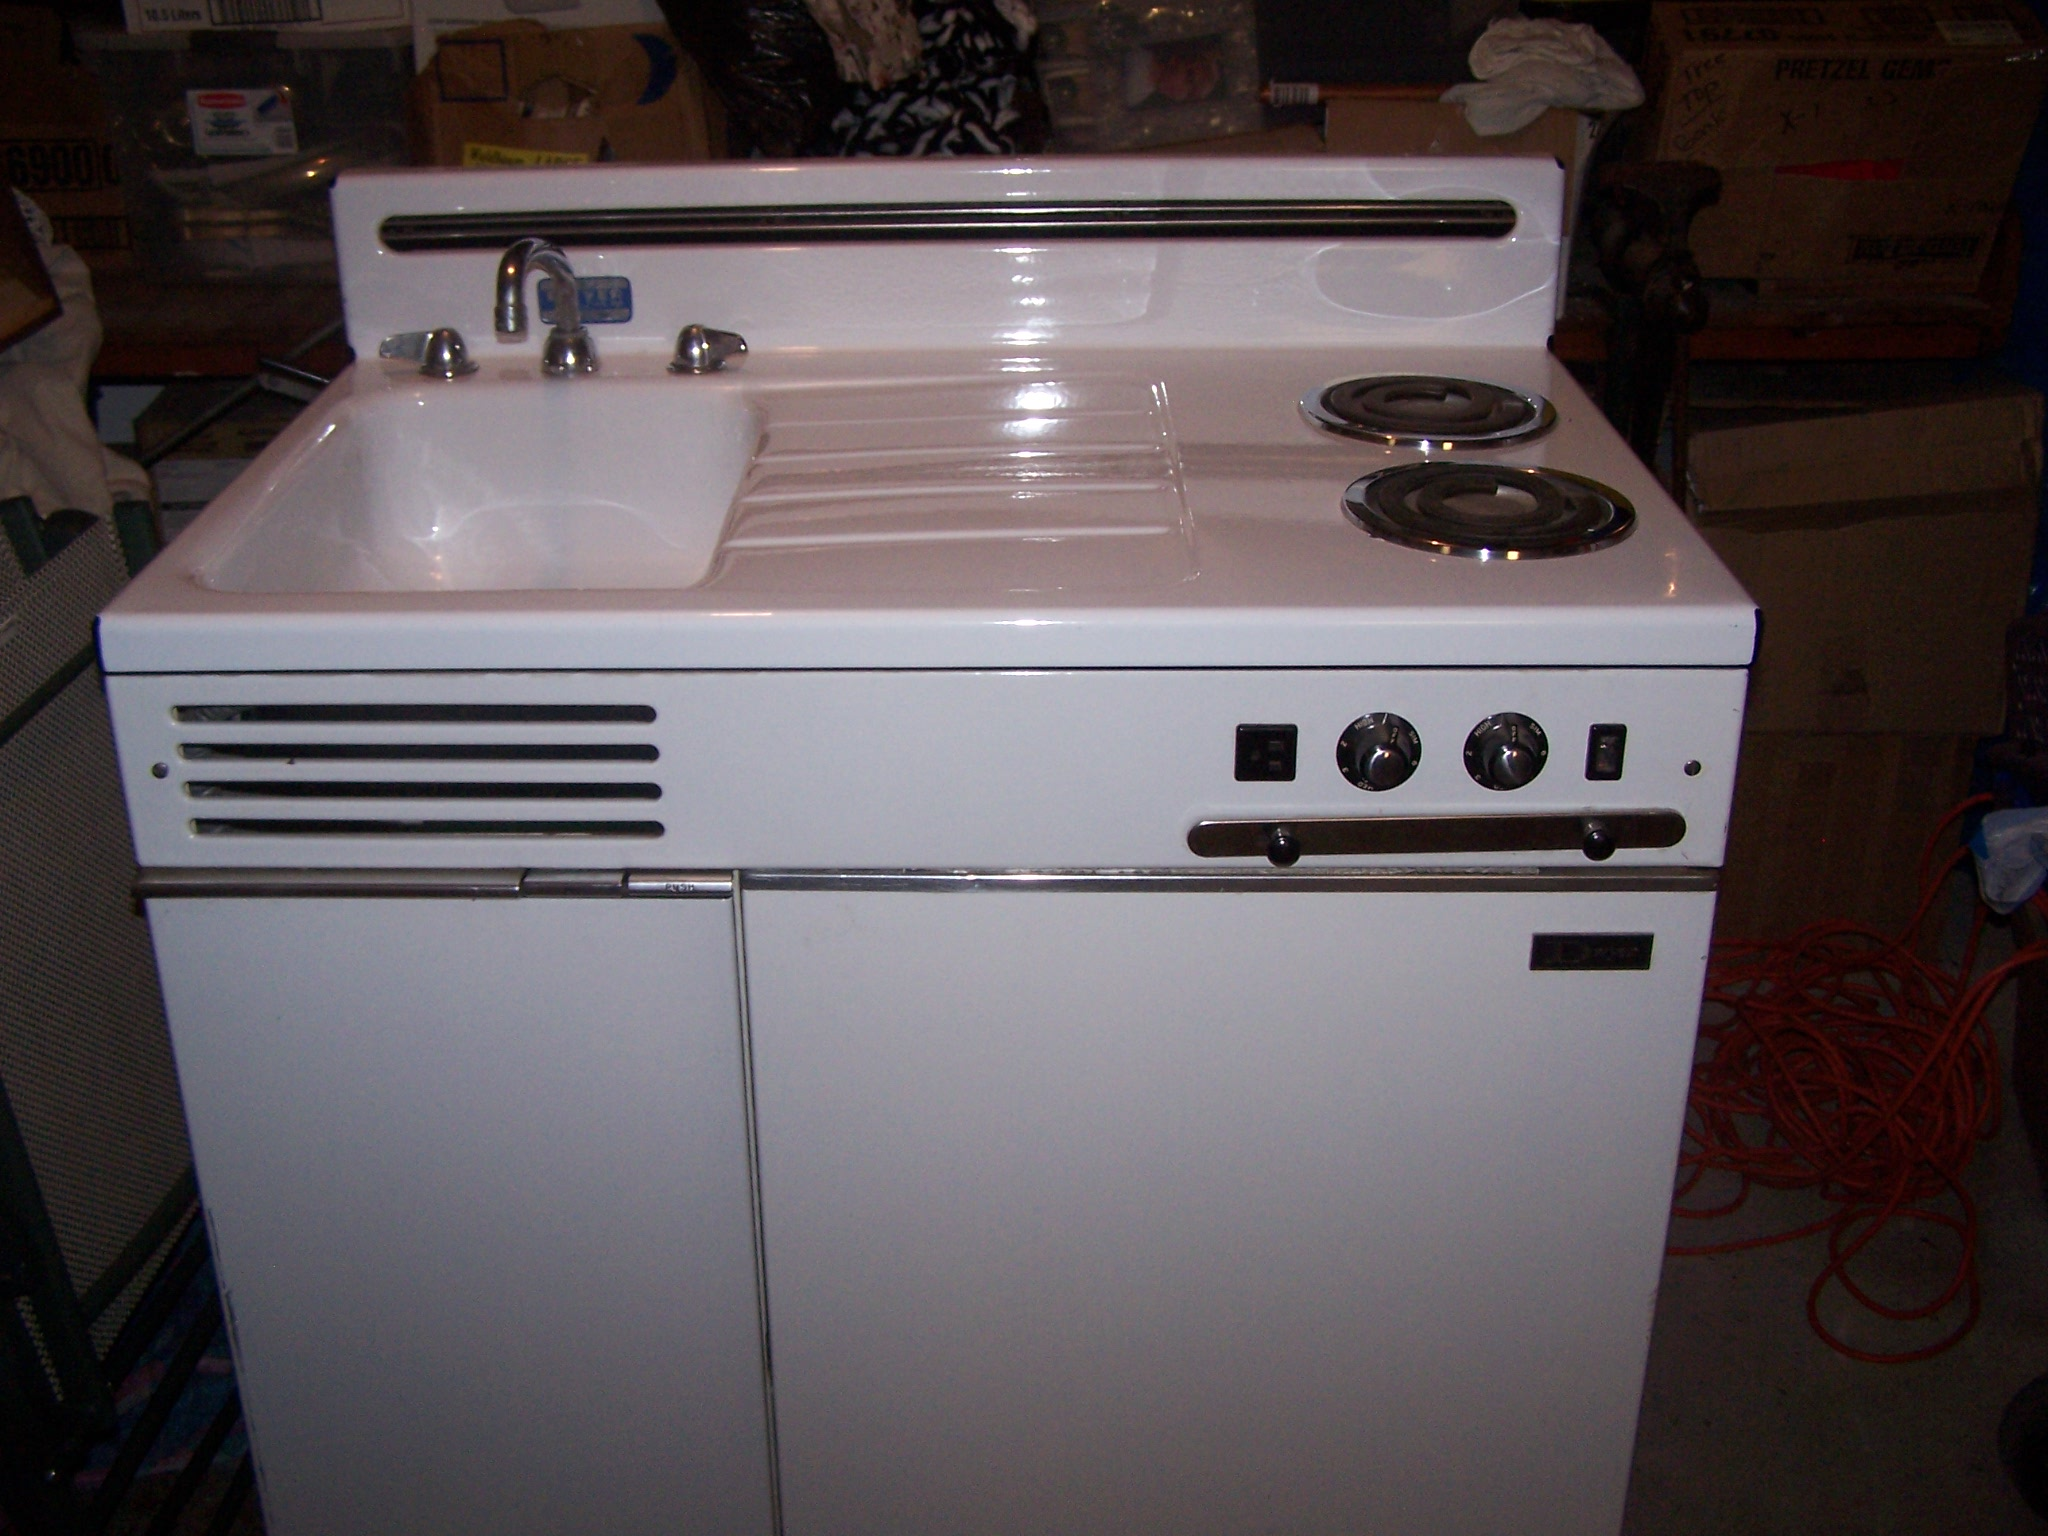 I Have A Dwyer All In One Kitchen Unit Circa 1950 It Has